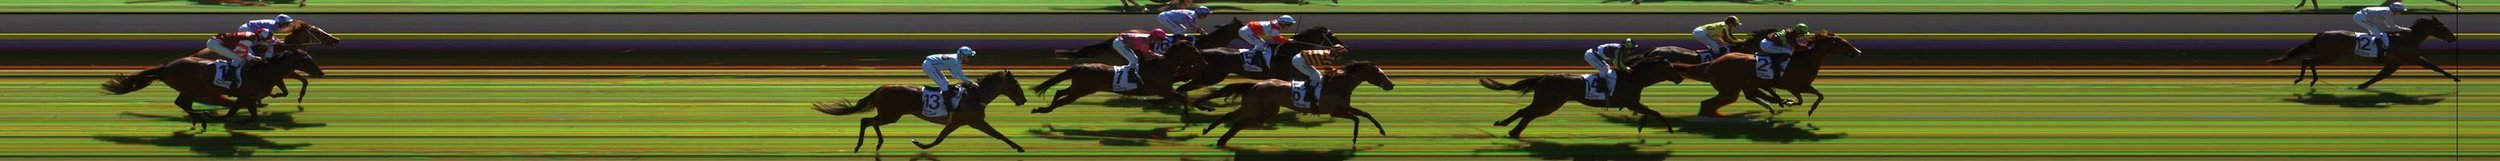 WARRACKNABEAL Race 1 No. 16 Tsar Star  Result : Unplaced at SP $13.00. Finished midfield after settling in fourth but the winner was a run away victor. Outcome -0.42 Units.